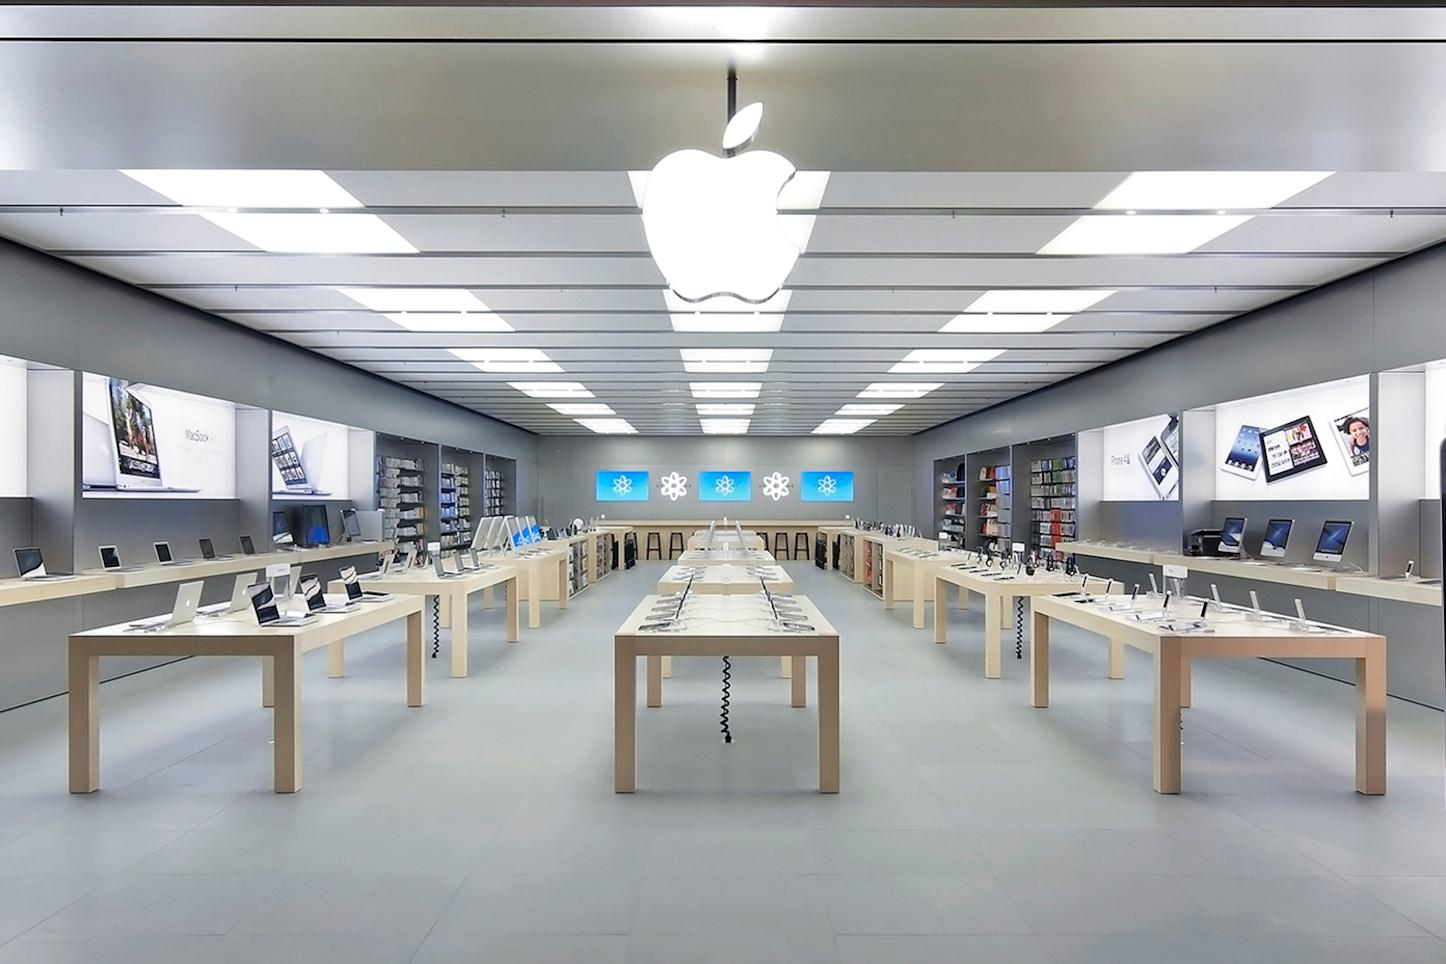 France Dijon Apple Store